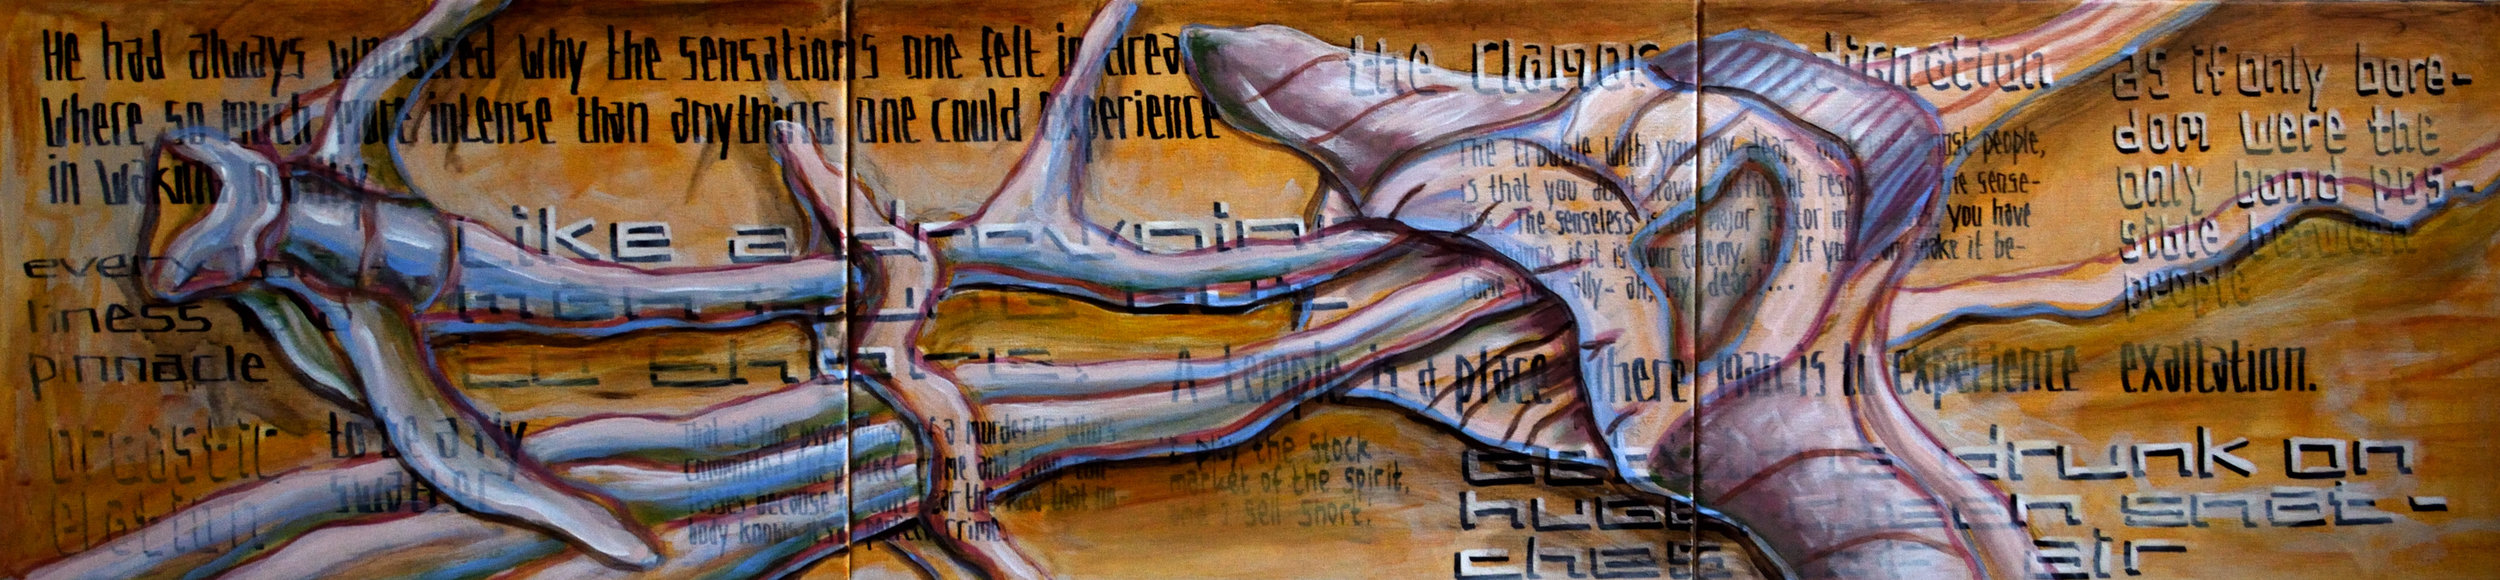 Triptych DO, A Place where Man is to Experience the Smile of the Senseless, acrylic and marker on canvas, 50x210cm